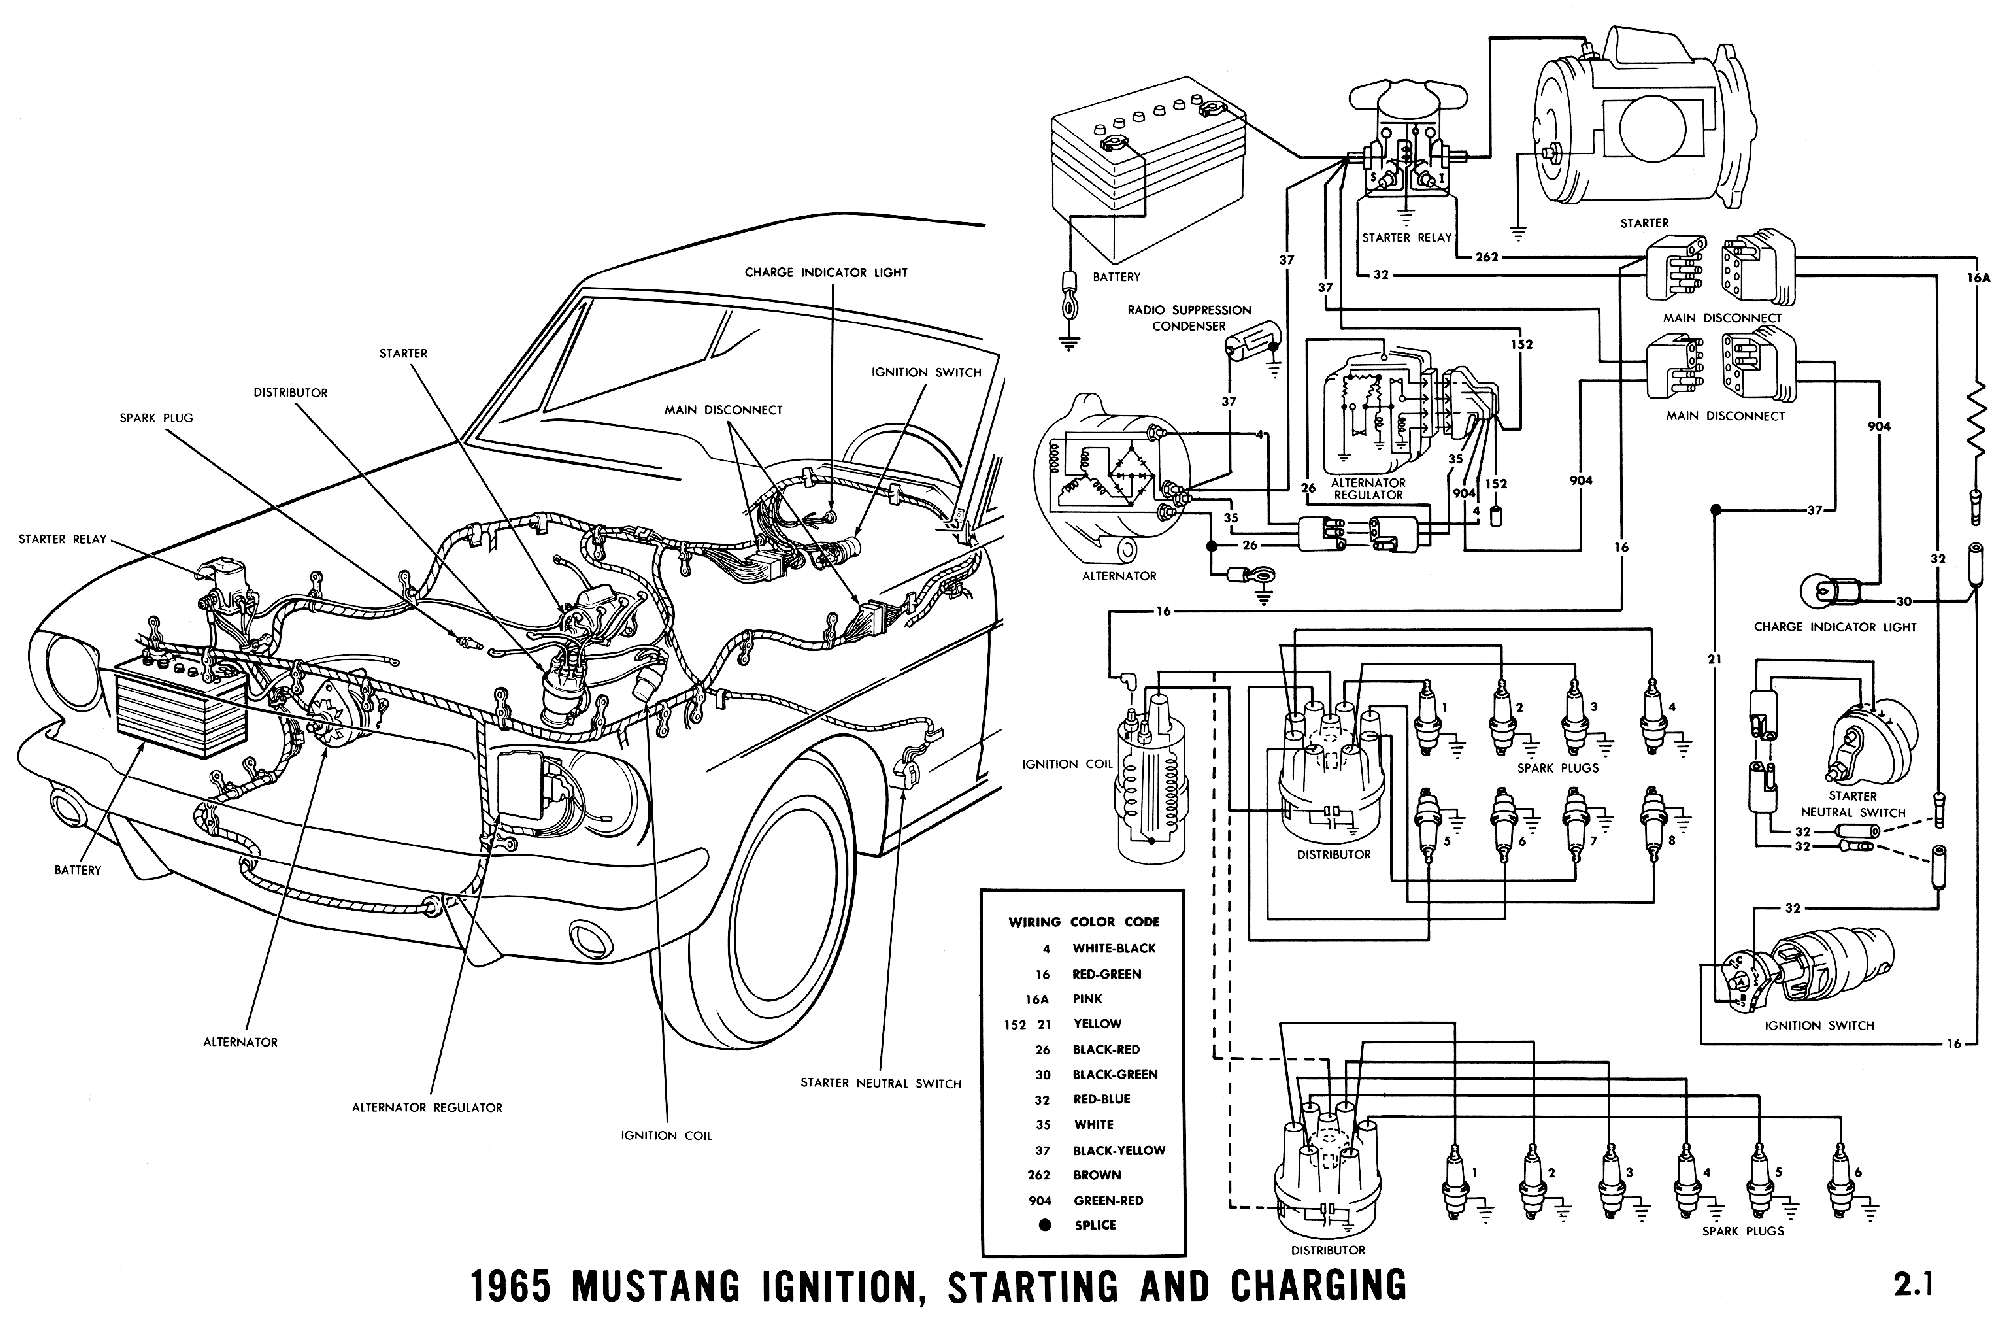 42 Chevy Truck Wiring Diagram Schematic Will Be A 2003 Gm 1500 Vacuum 1965 Mustang Diagrams Average Joe Restoration Chevrolet Electrical Factory